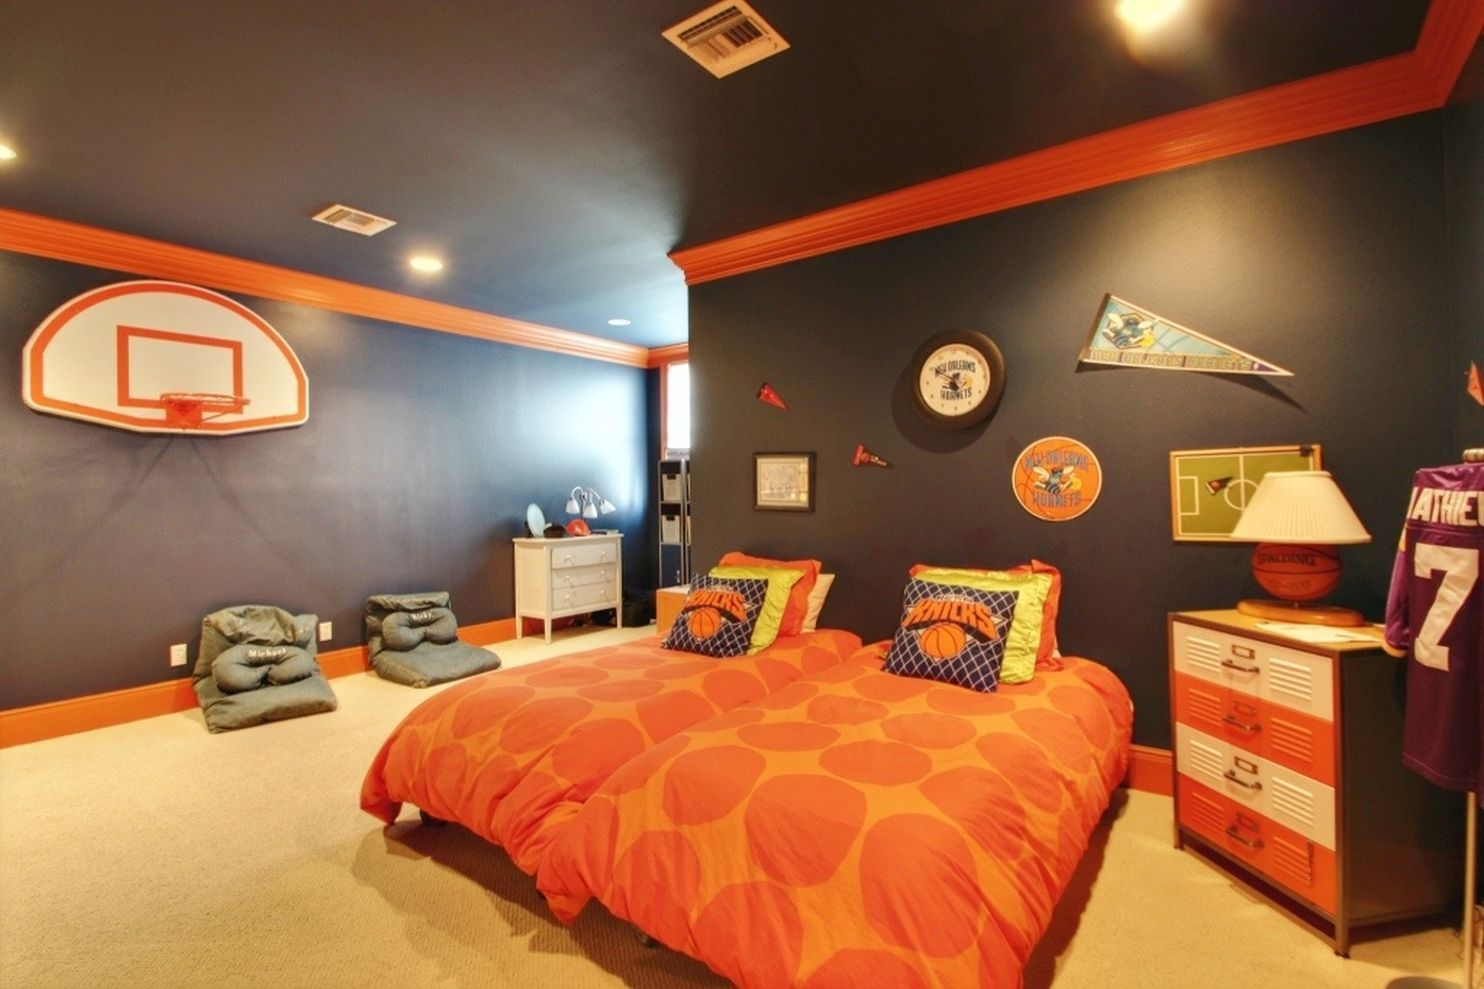 76 Inspiring Bedroom Design Ideas For Boy Who Loves Basketball